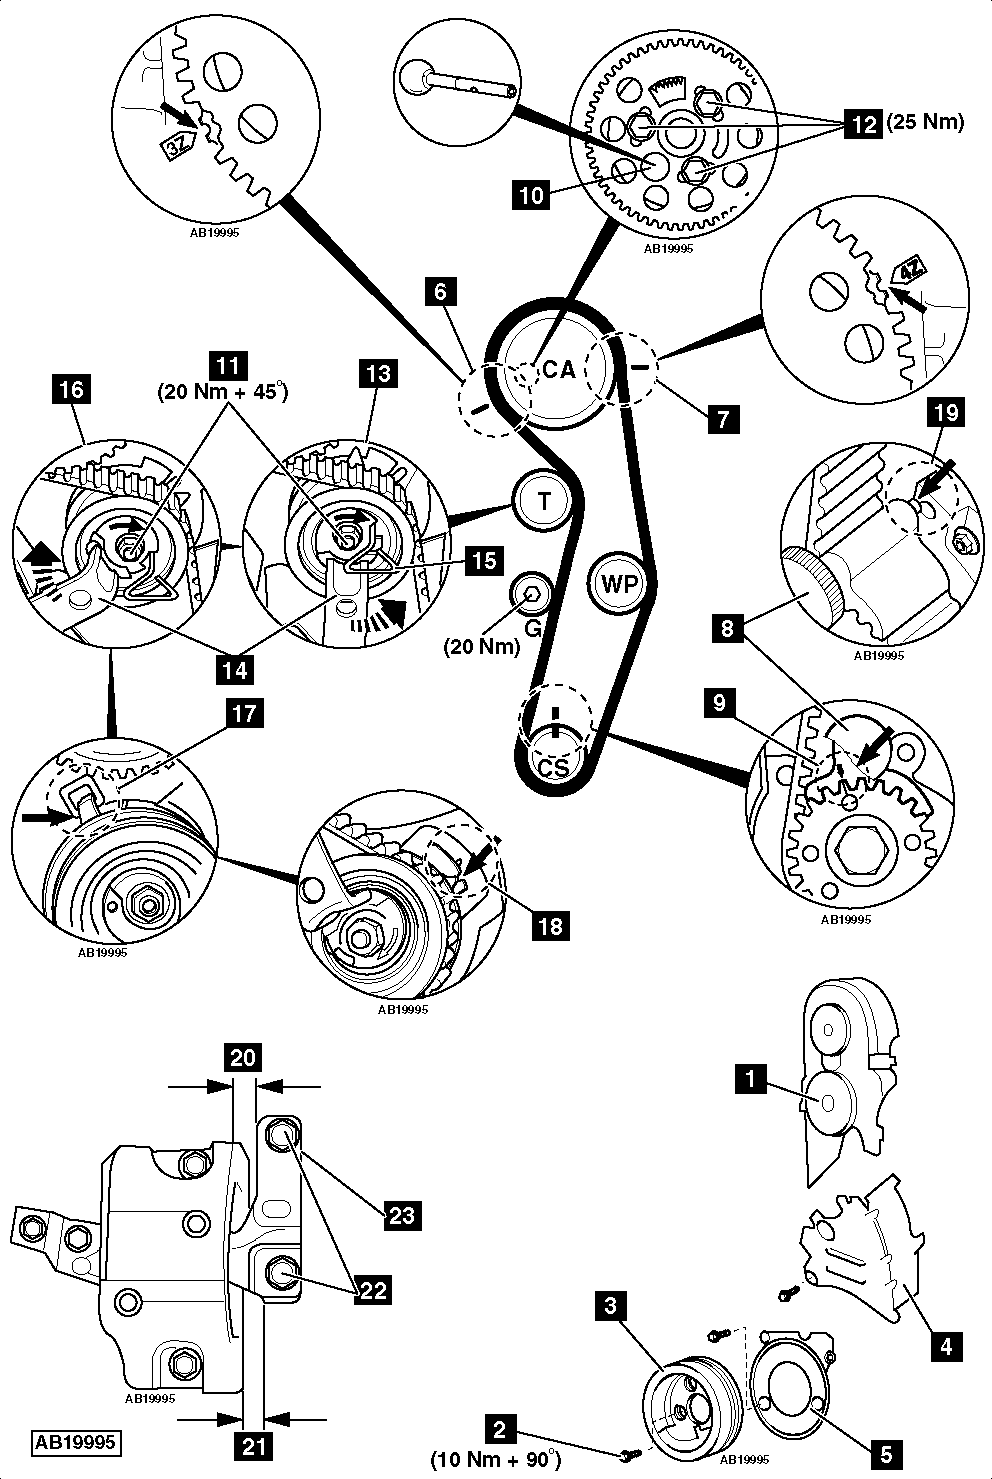 hight resolution of 19 tdi engine diagram wiring library vectra 1 9 cdti engine diagram 1 9 tdi engine diagram